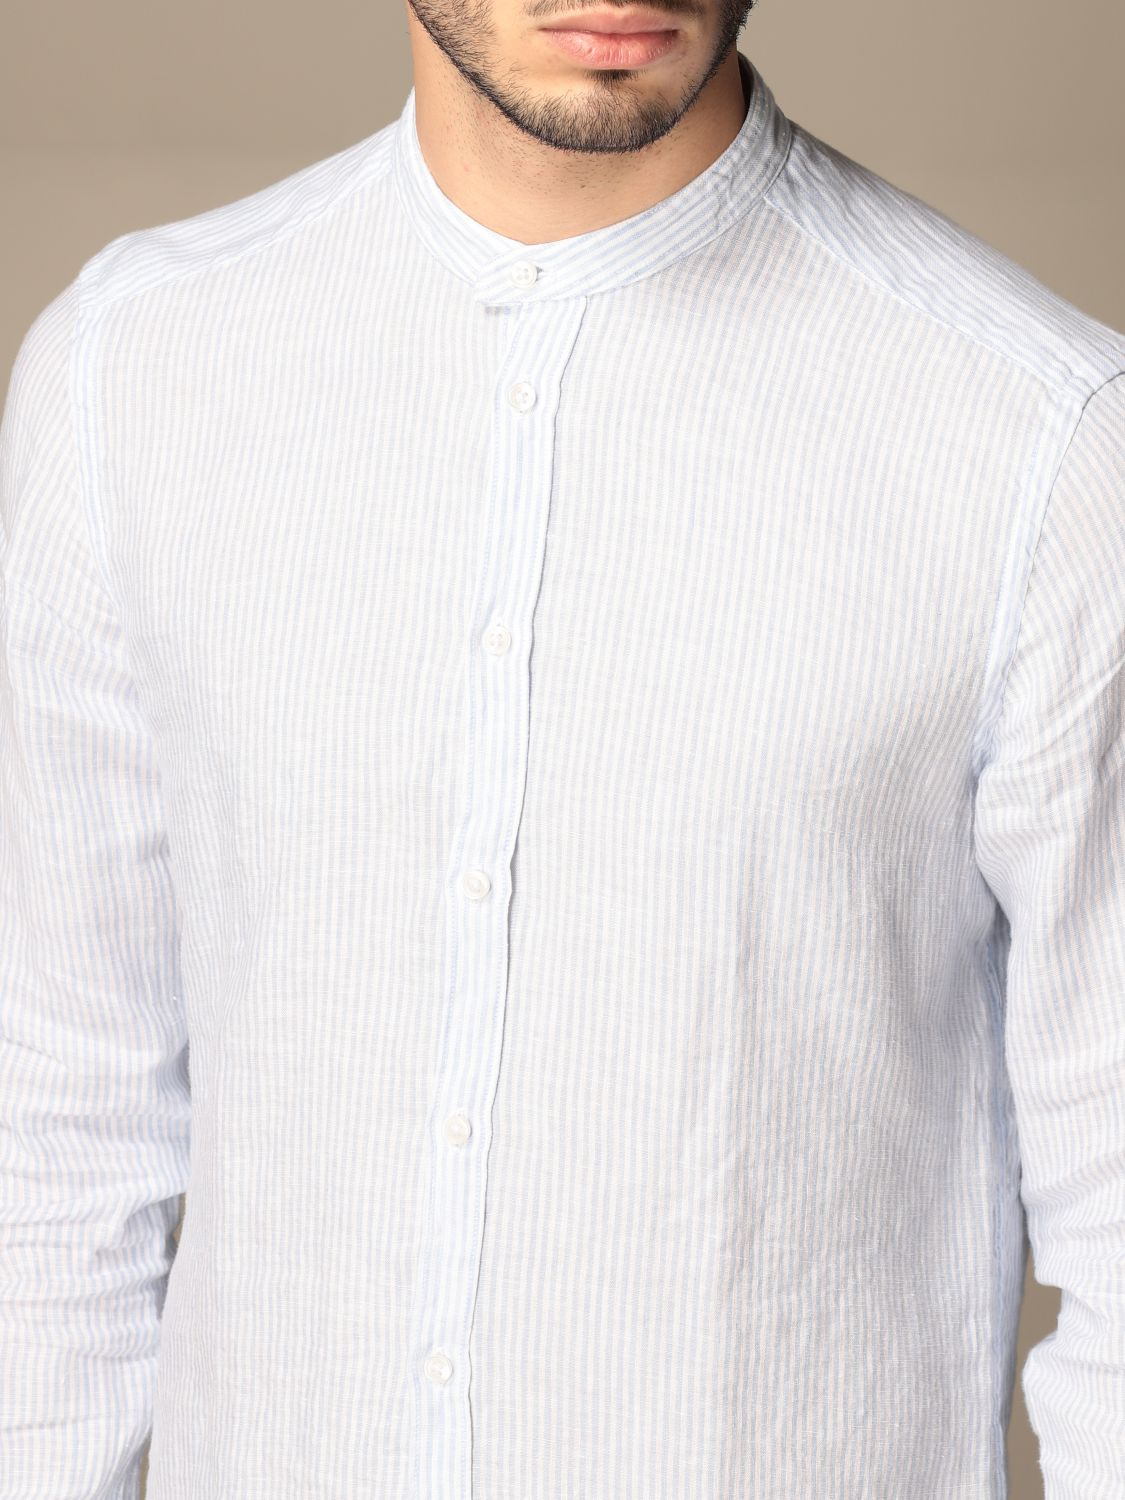 Chemise An American Tradition: Chemise homme Bd Baggies bleu azur 4